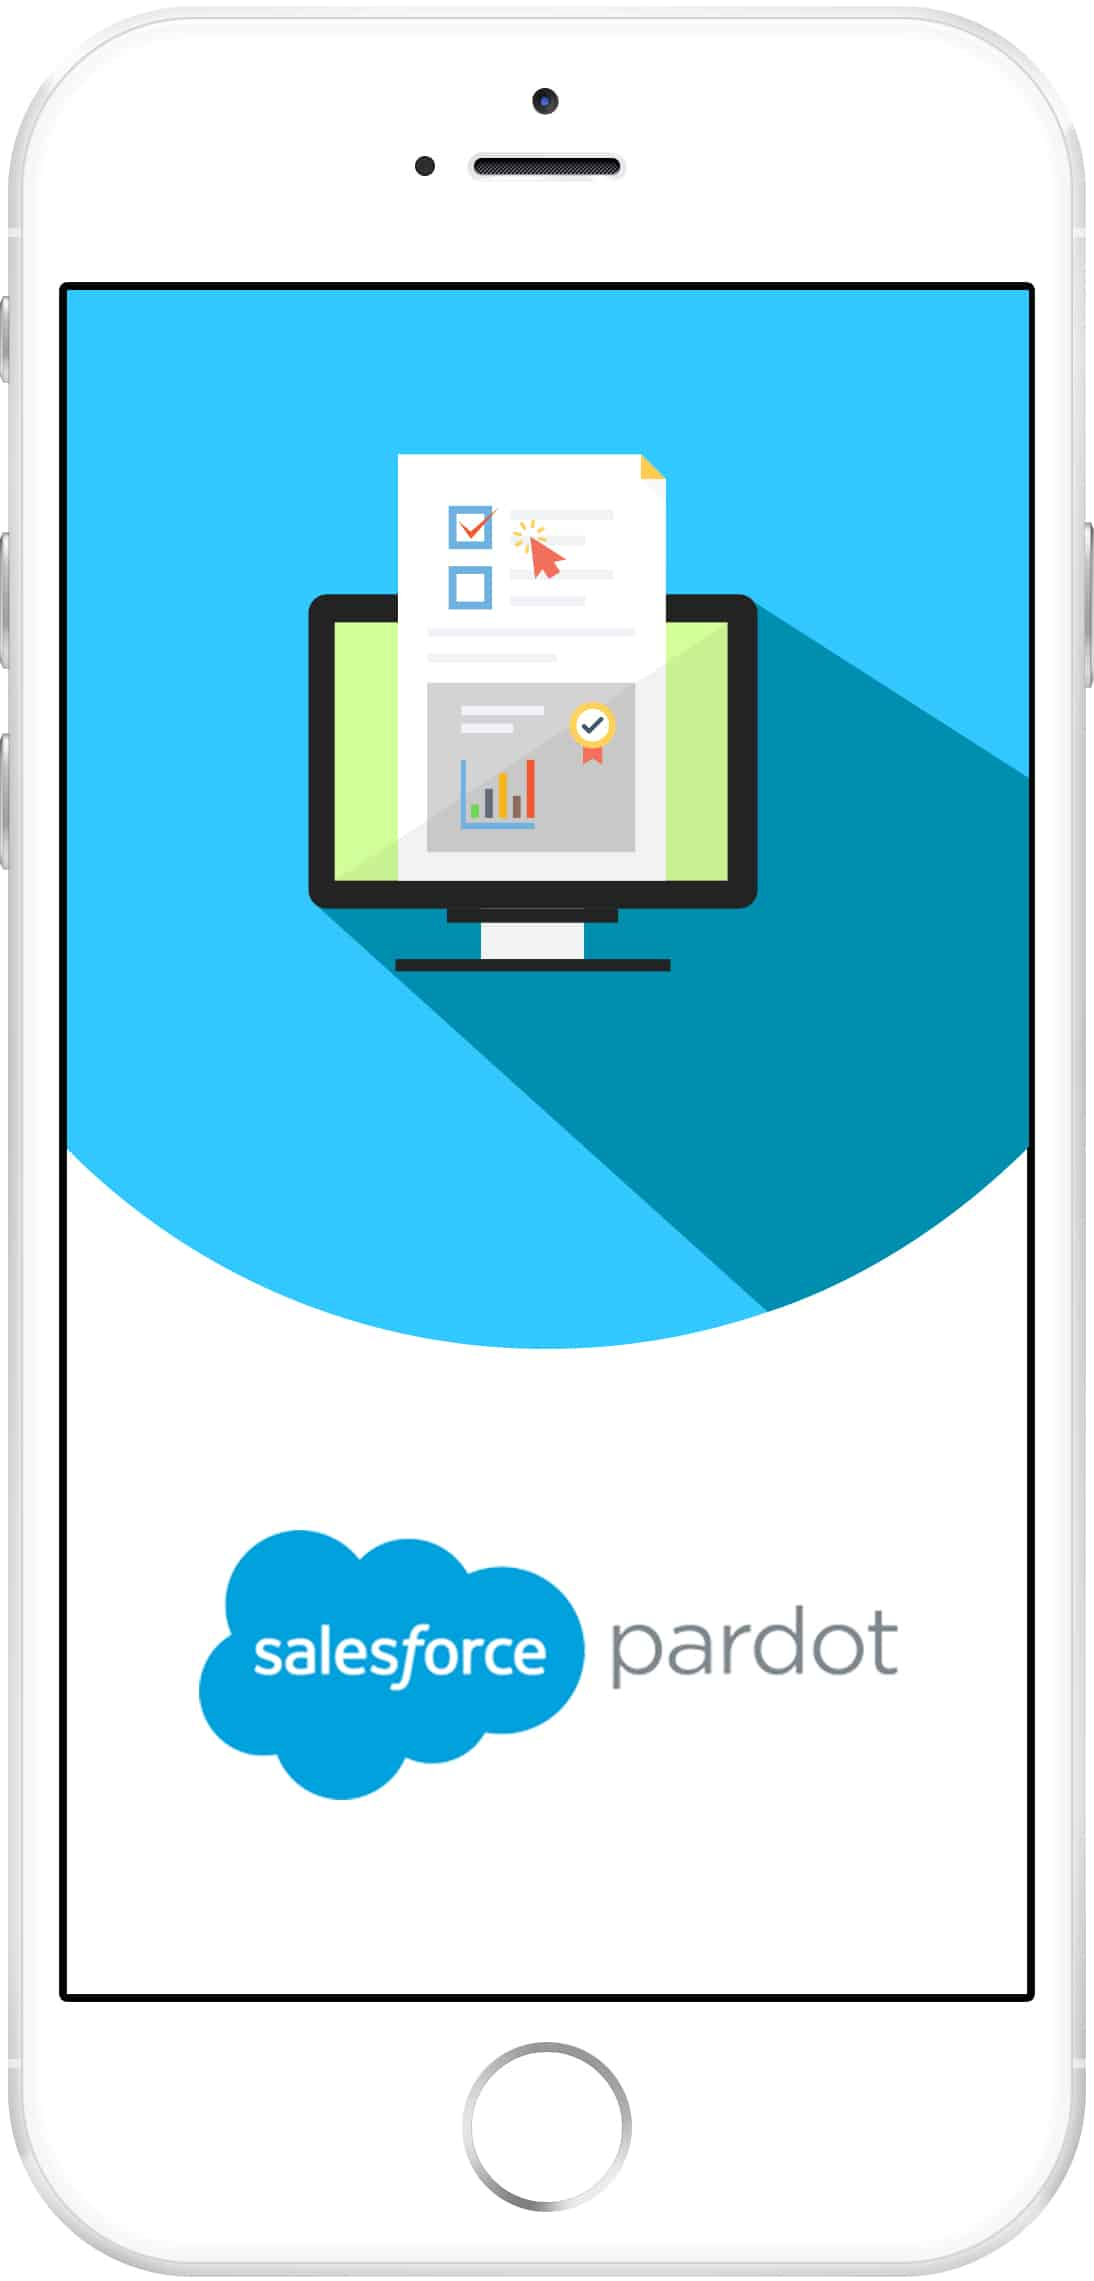 Pardot Experience And Certification